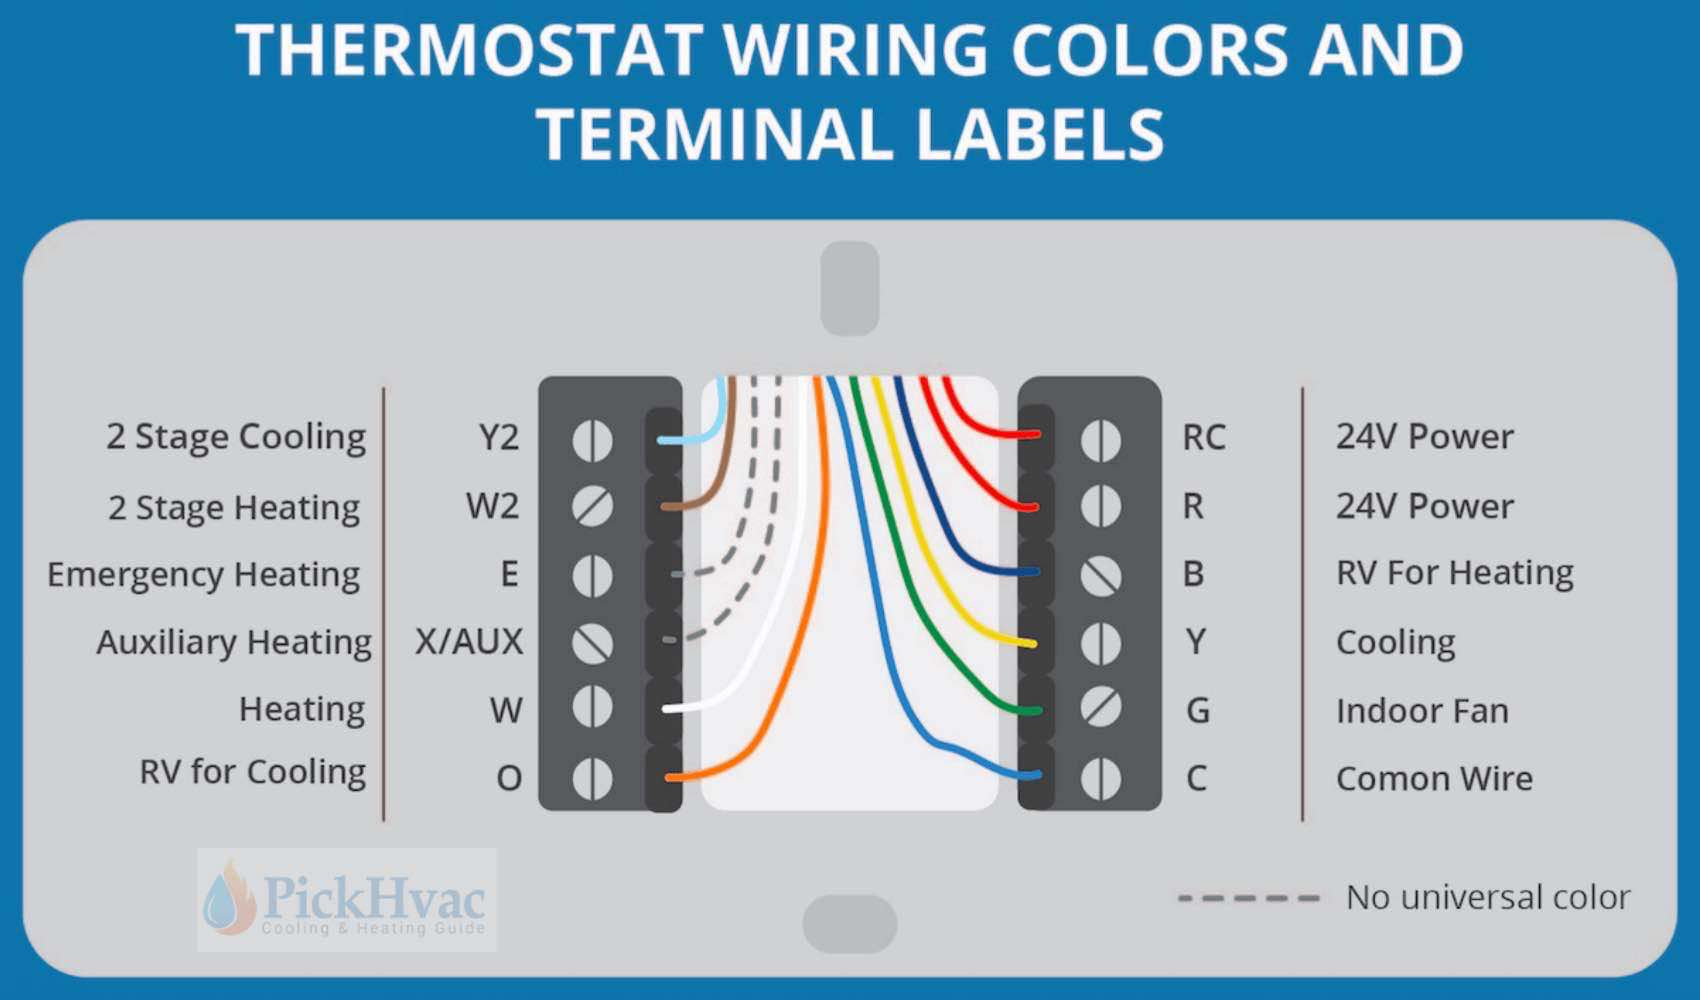 In-Depth Thermostat Wiring Guide For Homeowners - Nest Thermostat Wiring Diagram For 2 Stage Cooling 2 Stages Heat